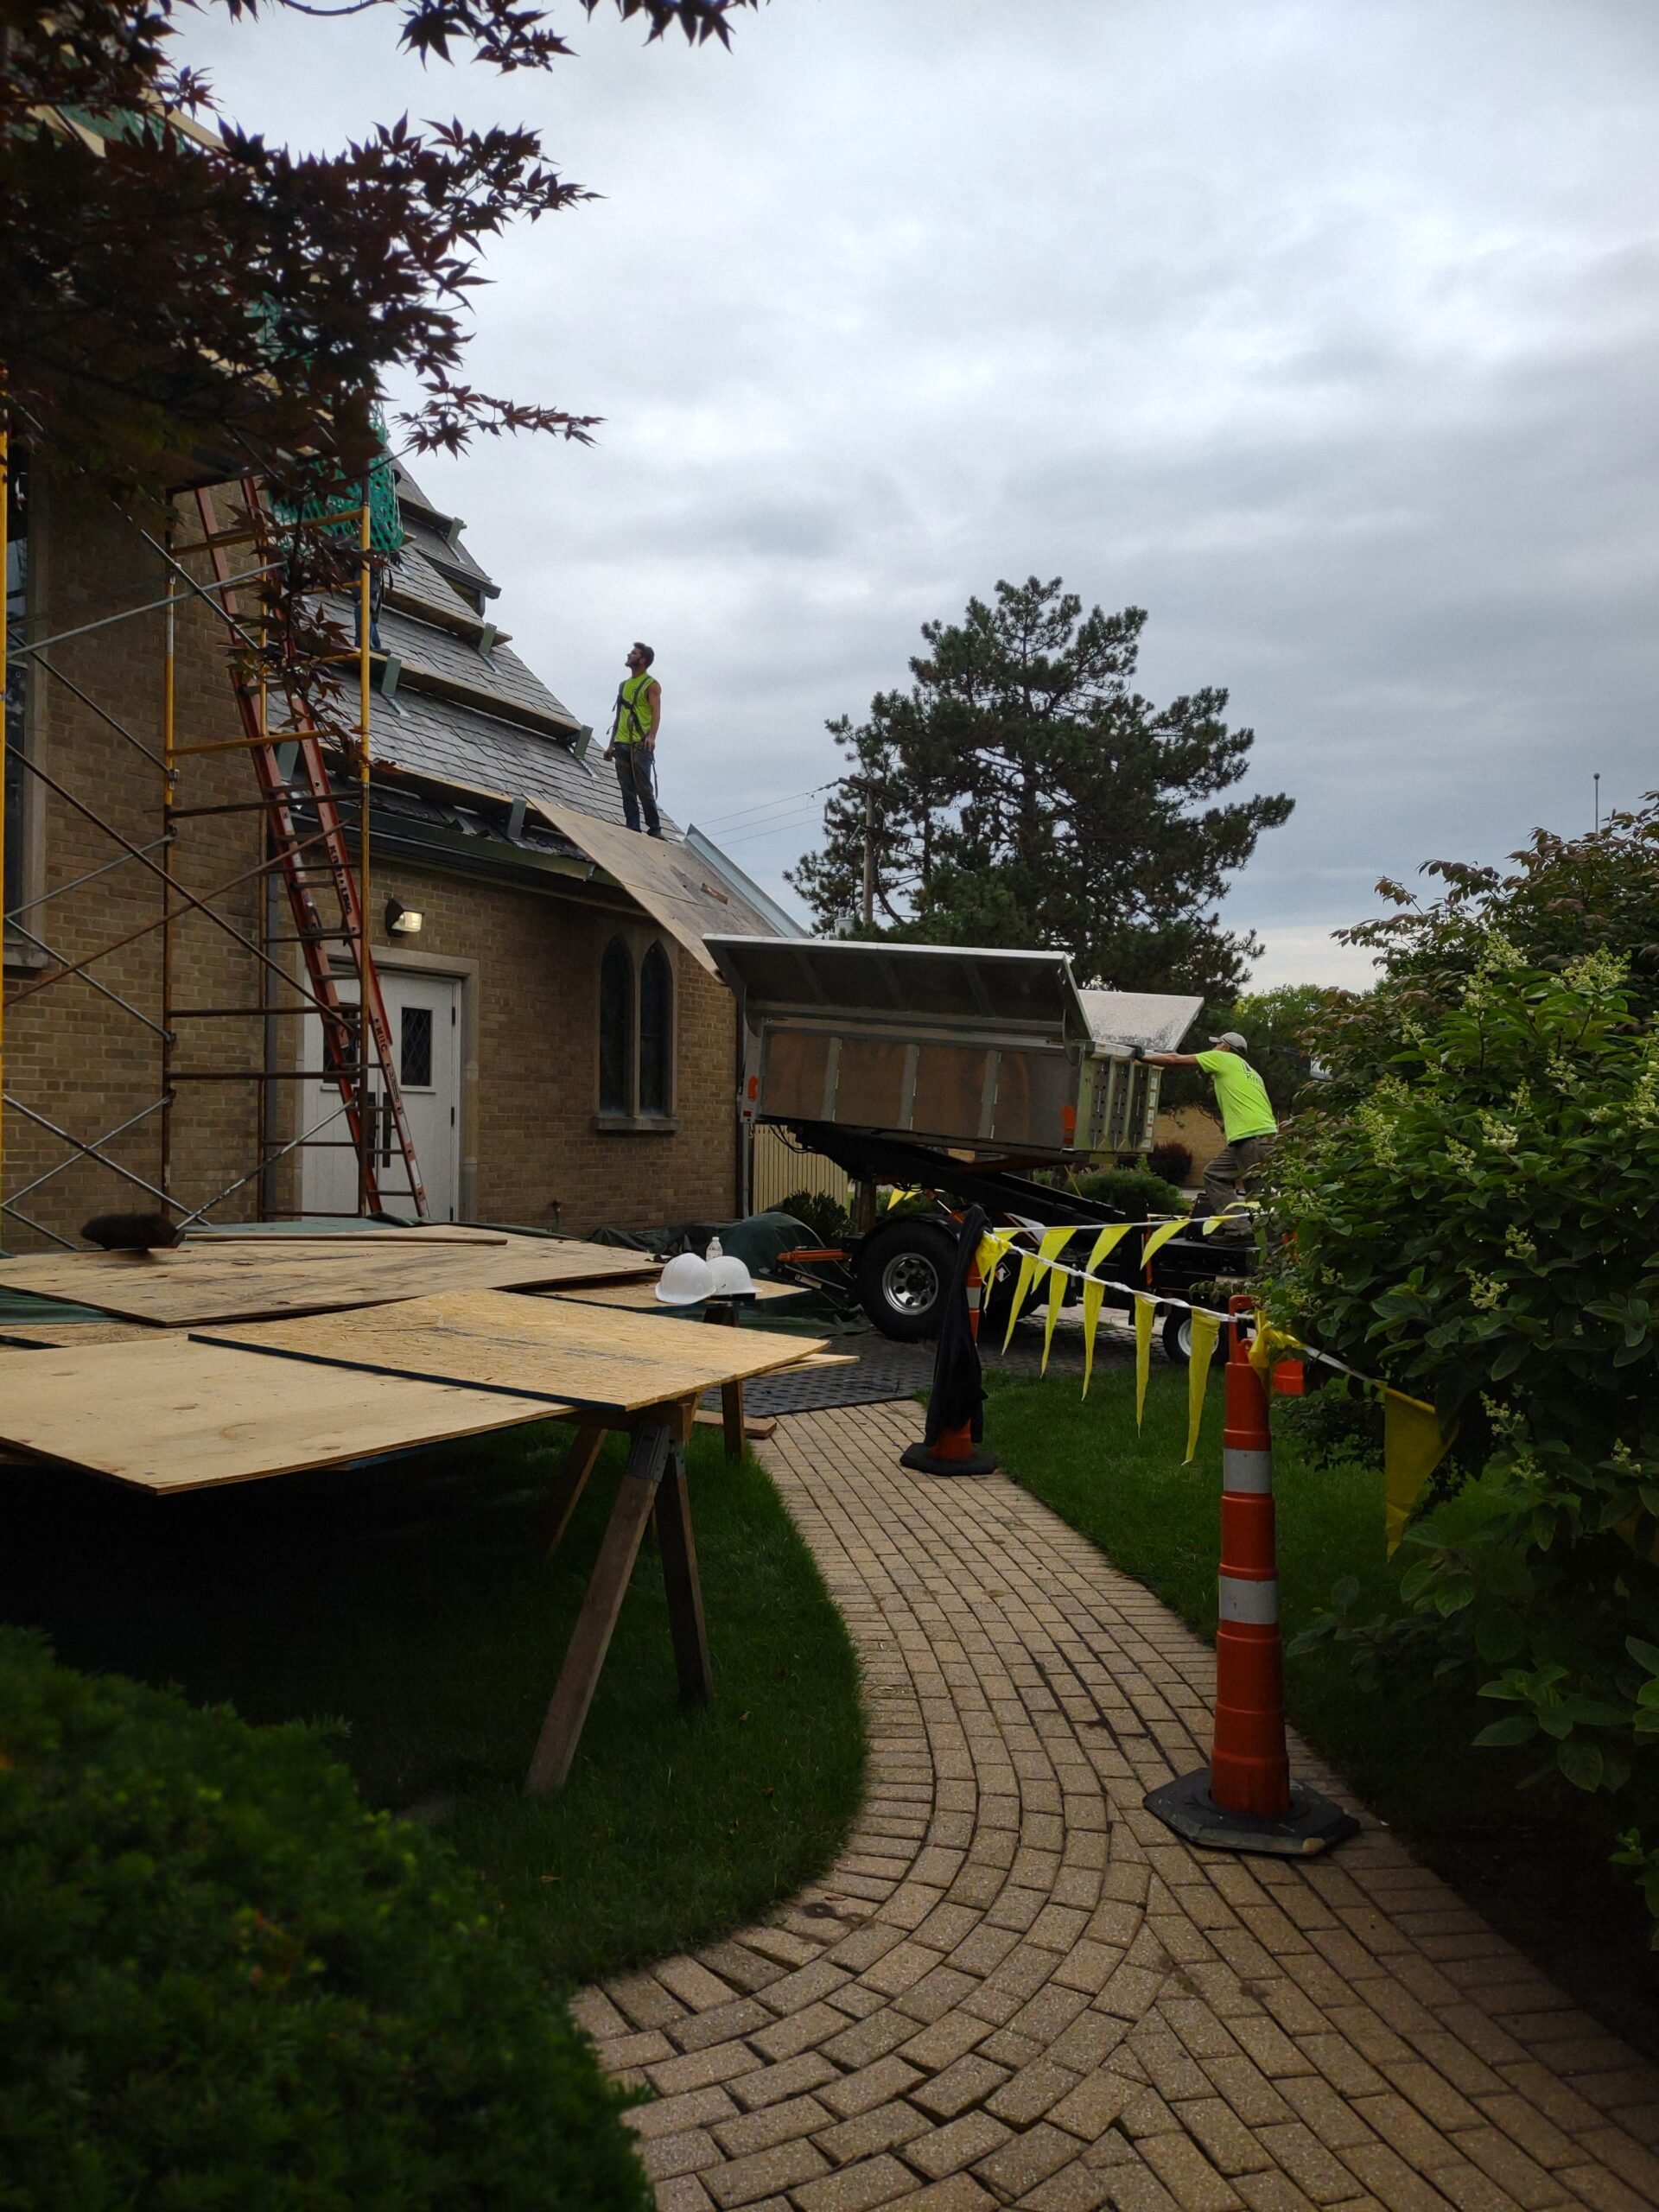 7-9-2021 Roof 2